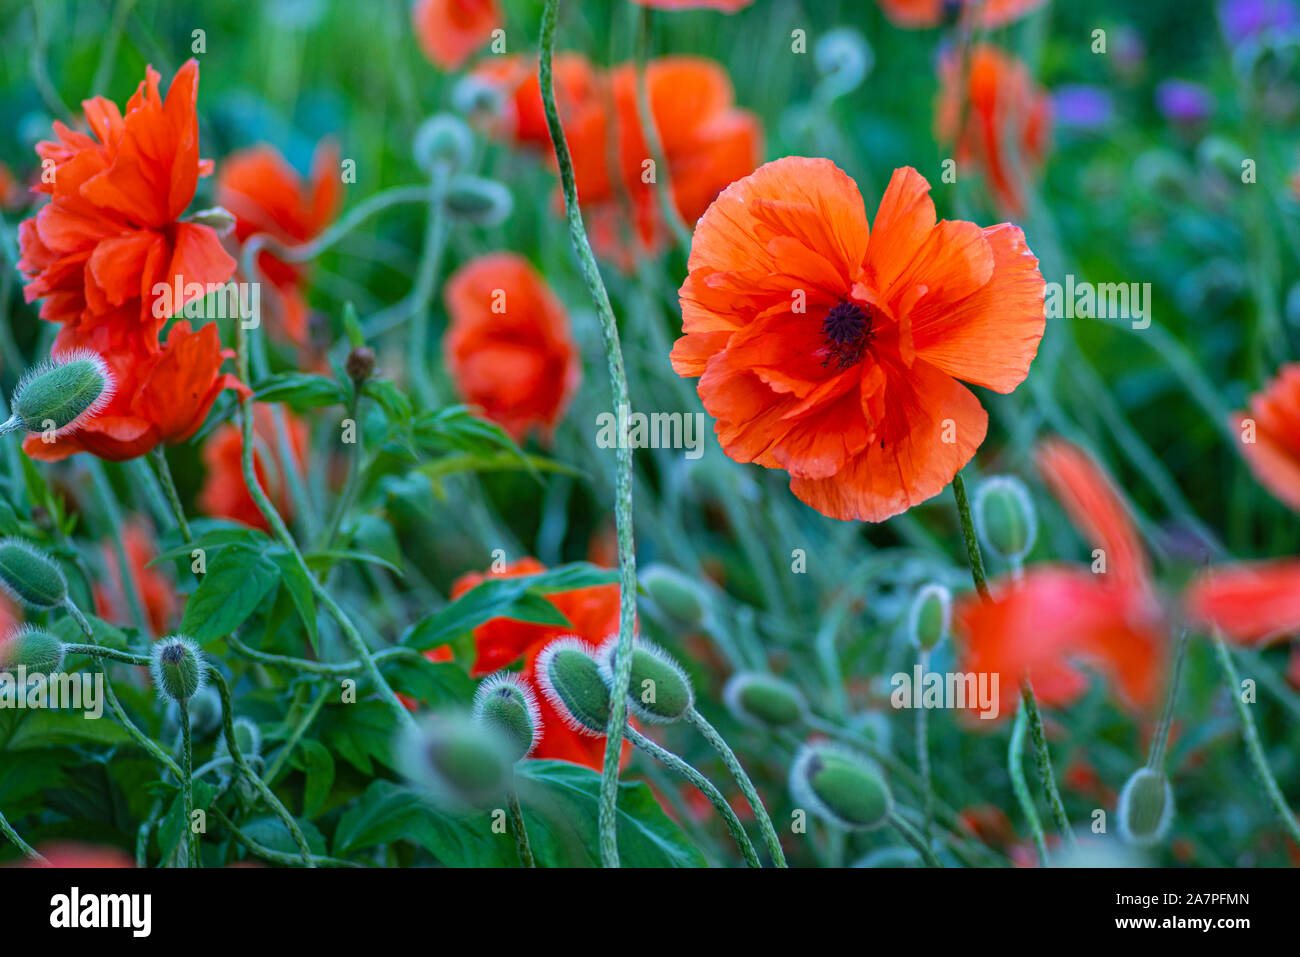 In poppies field. Red poppies on a field on a summer sunny day. Summer and spring, landscape, poppy seed. Opium poppy, botanical plant, ecology. Drug Stock Photo